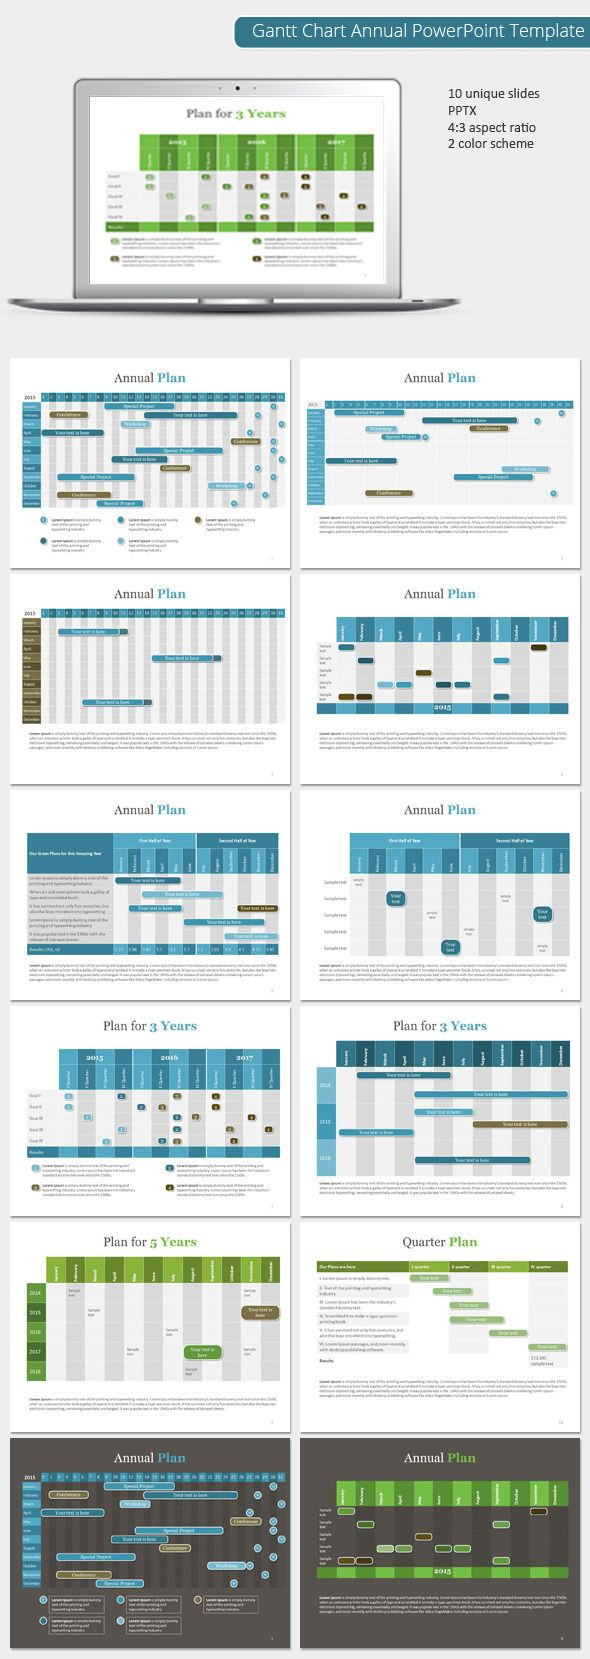 Gantt Chart Annual Powerpoint Template Powerpoint Templates